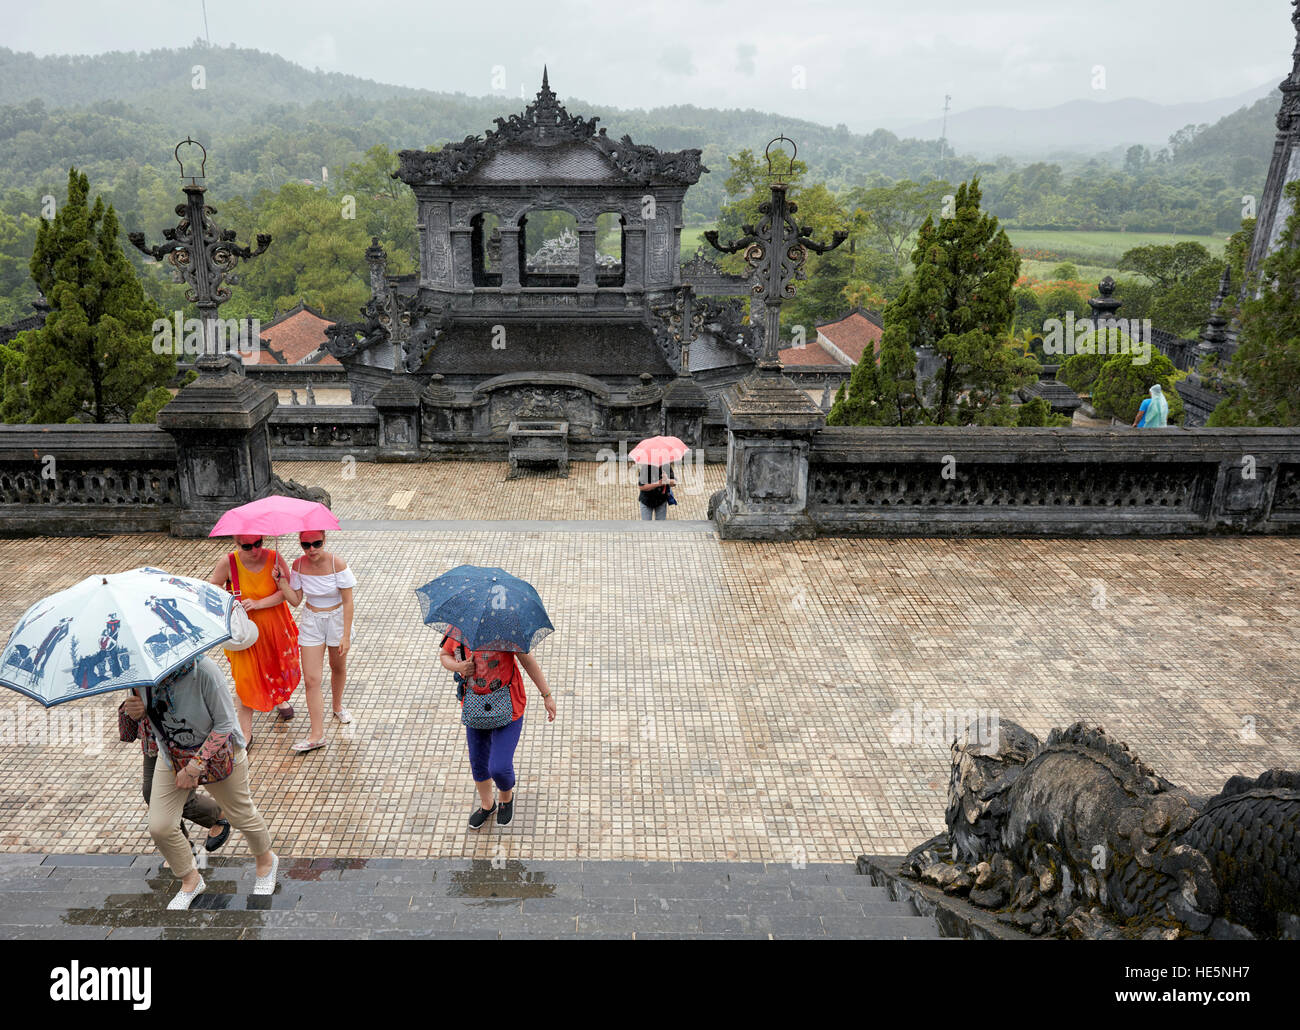 Tourists ascend from the Salutation Court to the Thien Dinh Palace. Tomb of Khai Dinh (Ung Tomb), Hue, Vietnam. - Stock Image